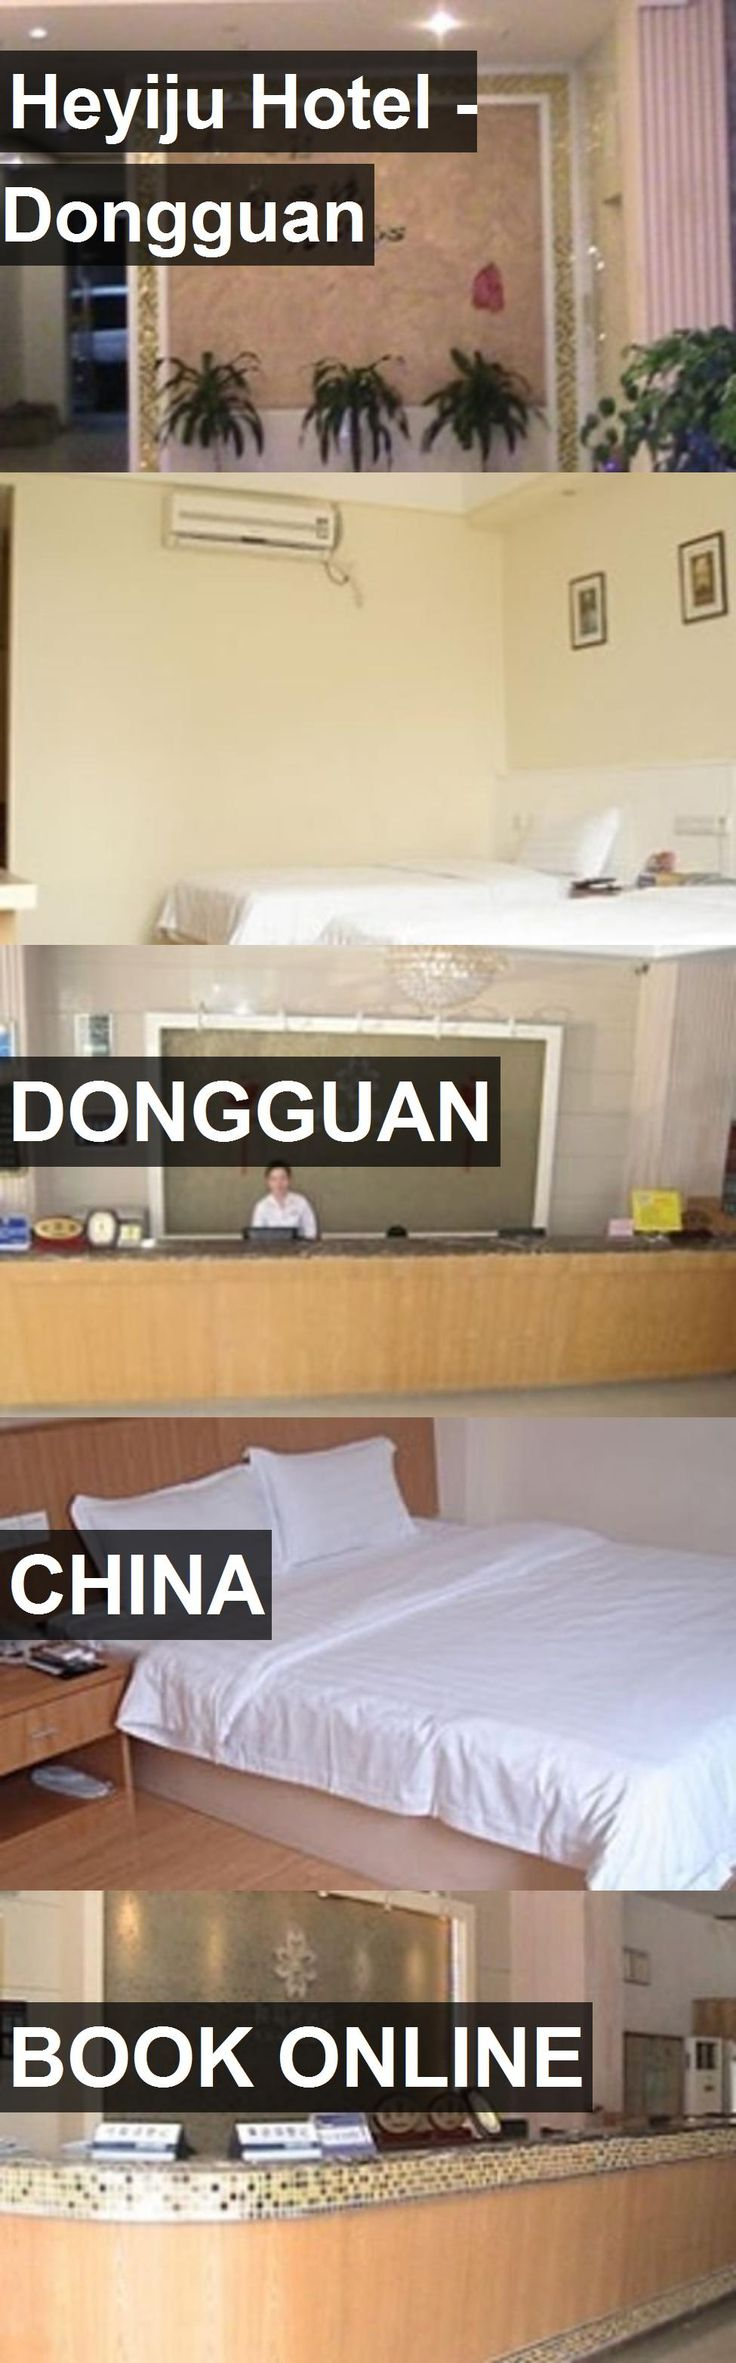 Heyiju Hotel - Dongguan in Dongguan, China. For more information, photos, reviews and best prices please follow the link. #China #Dongguan #travel #vacation #hotel